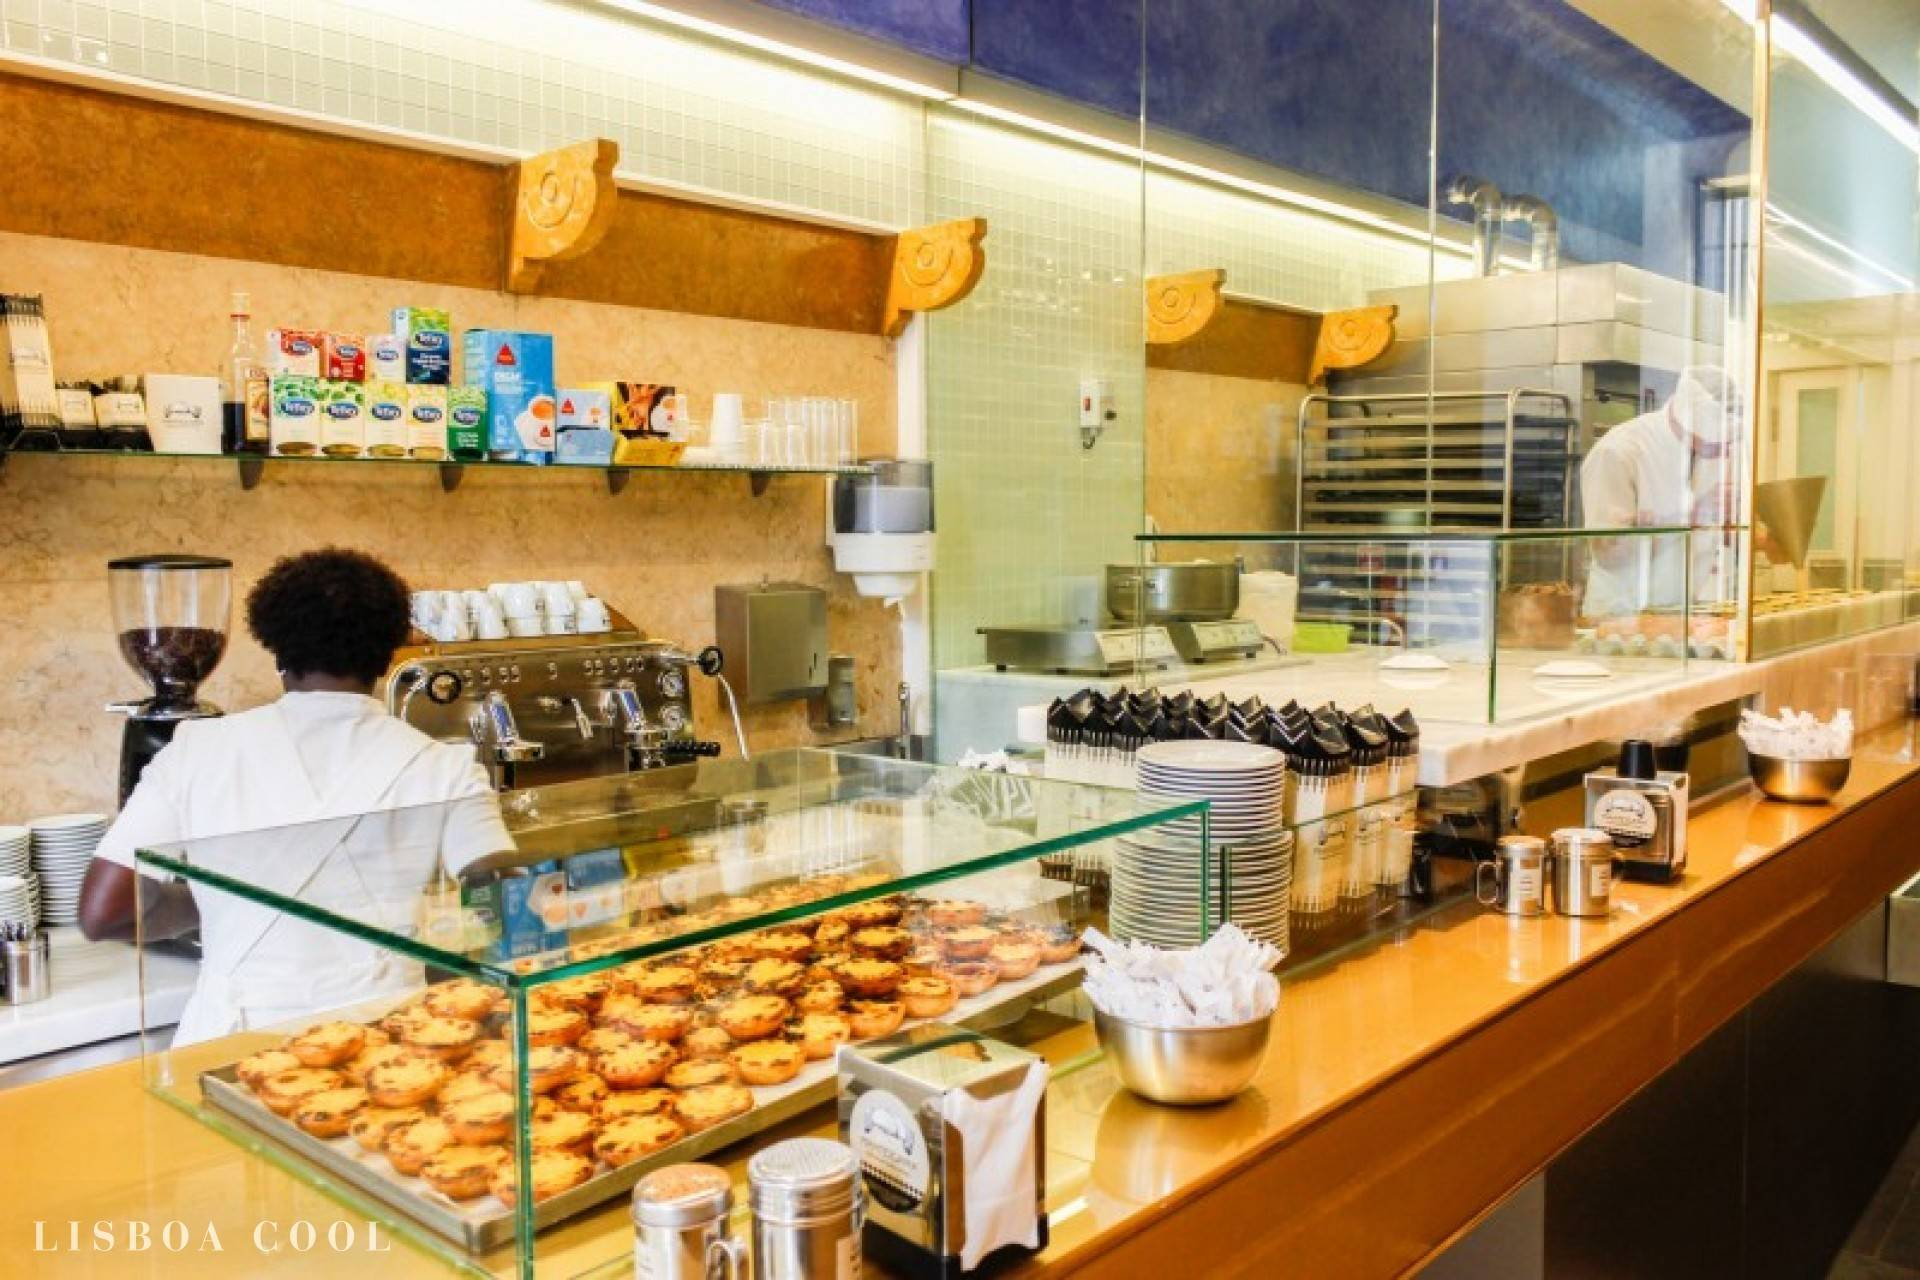 Our team picks Manteigaria Lisboa as one of the best cafés to try pastel de nata.